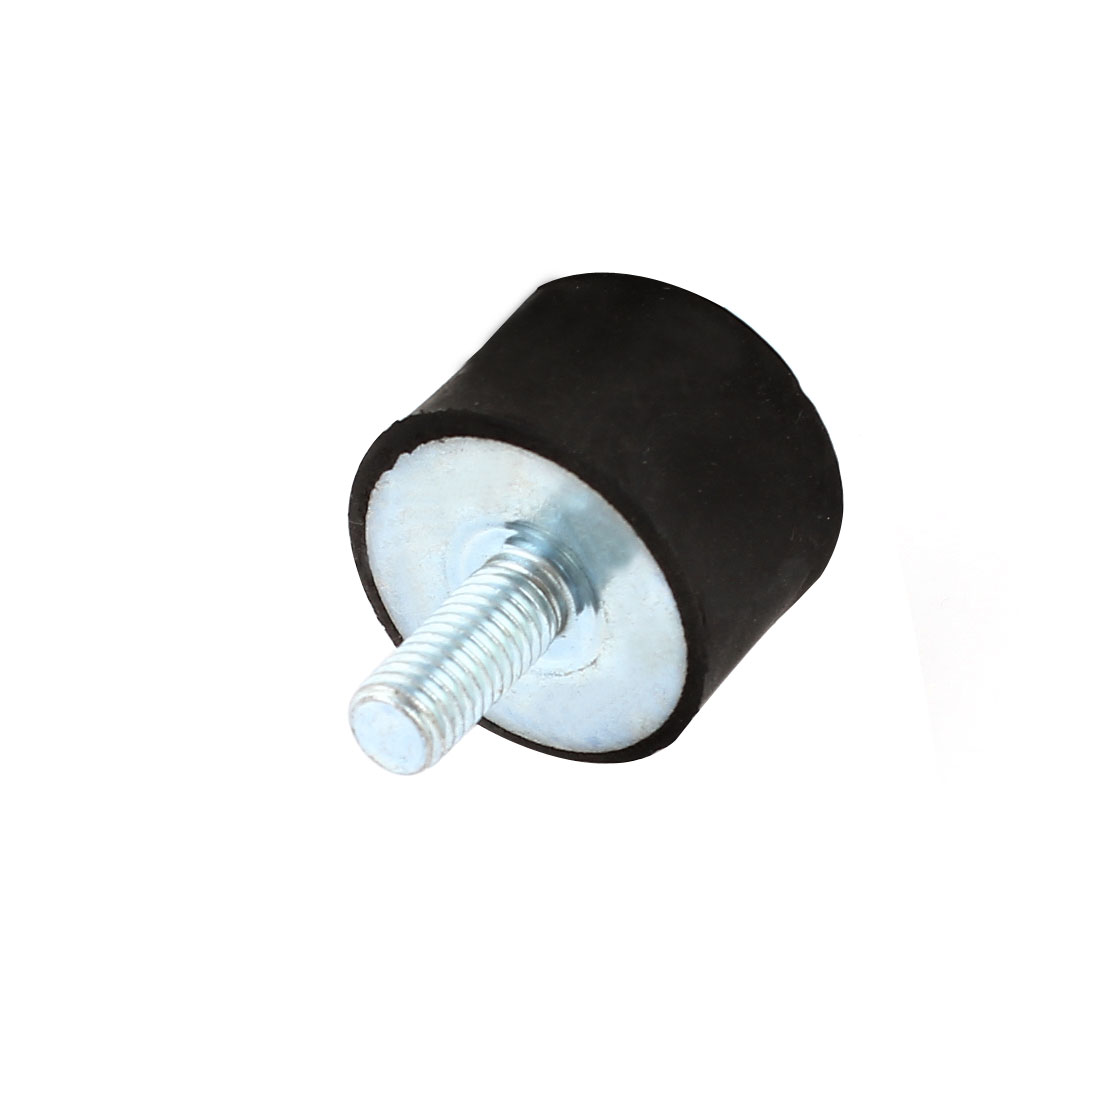 8-x-25mm-Male-Thread-Rubber-Blk-Base-Vibration-Isolator-Mount